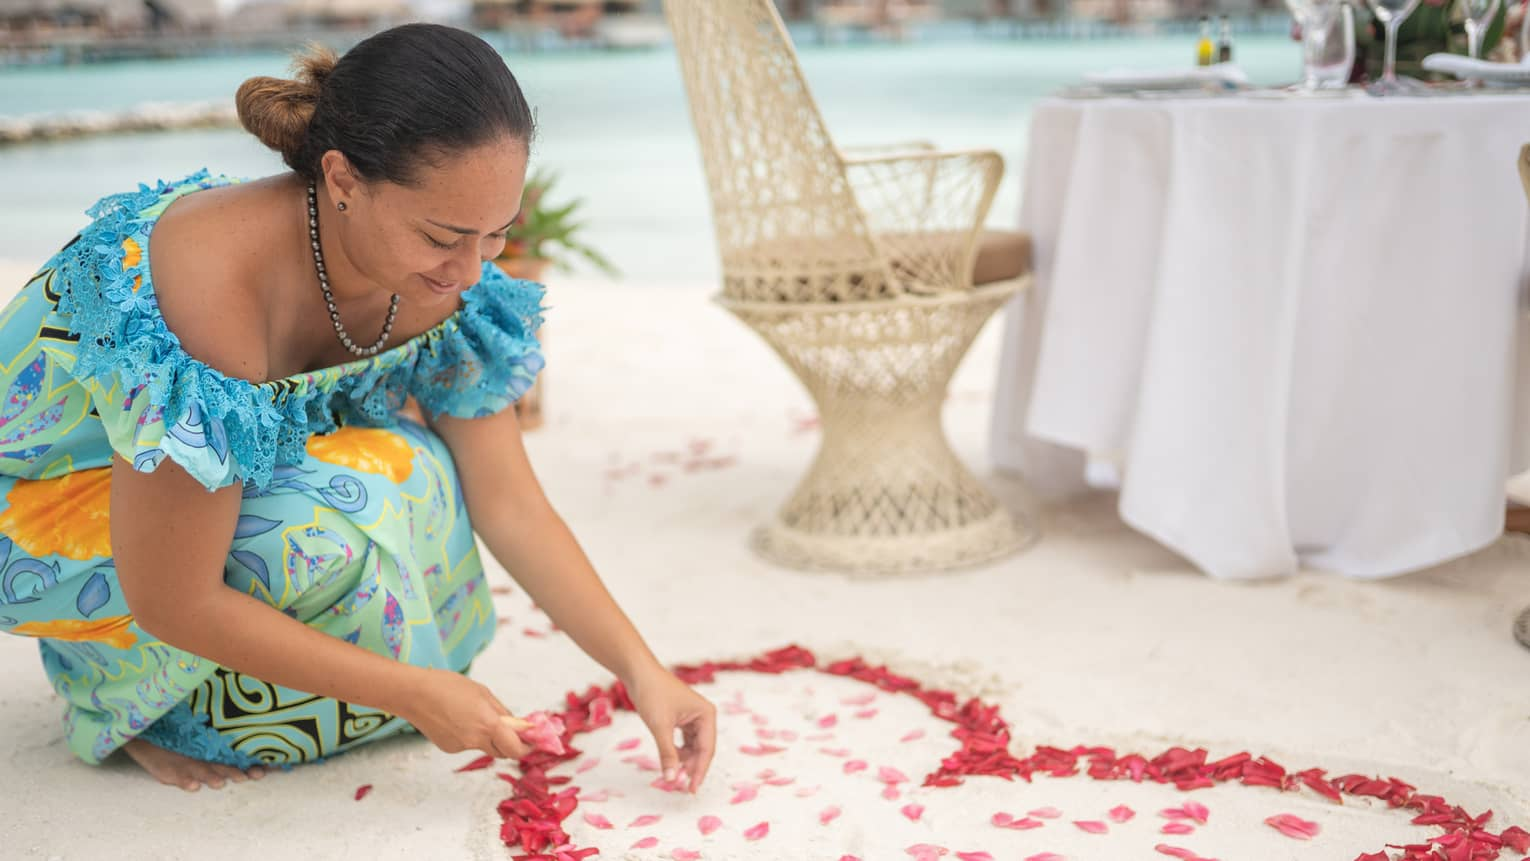 Woman arranges red rose petals into heart shape on sand beach